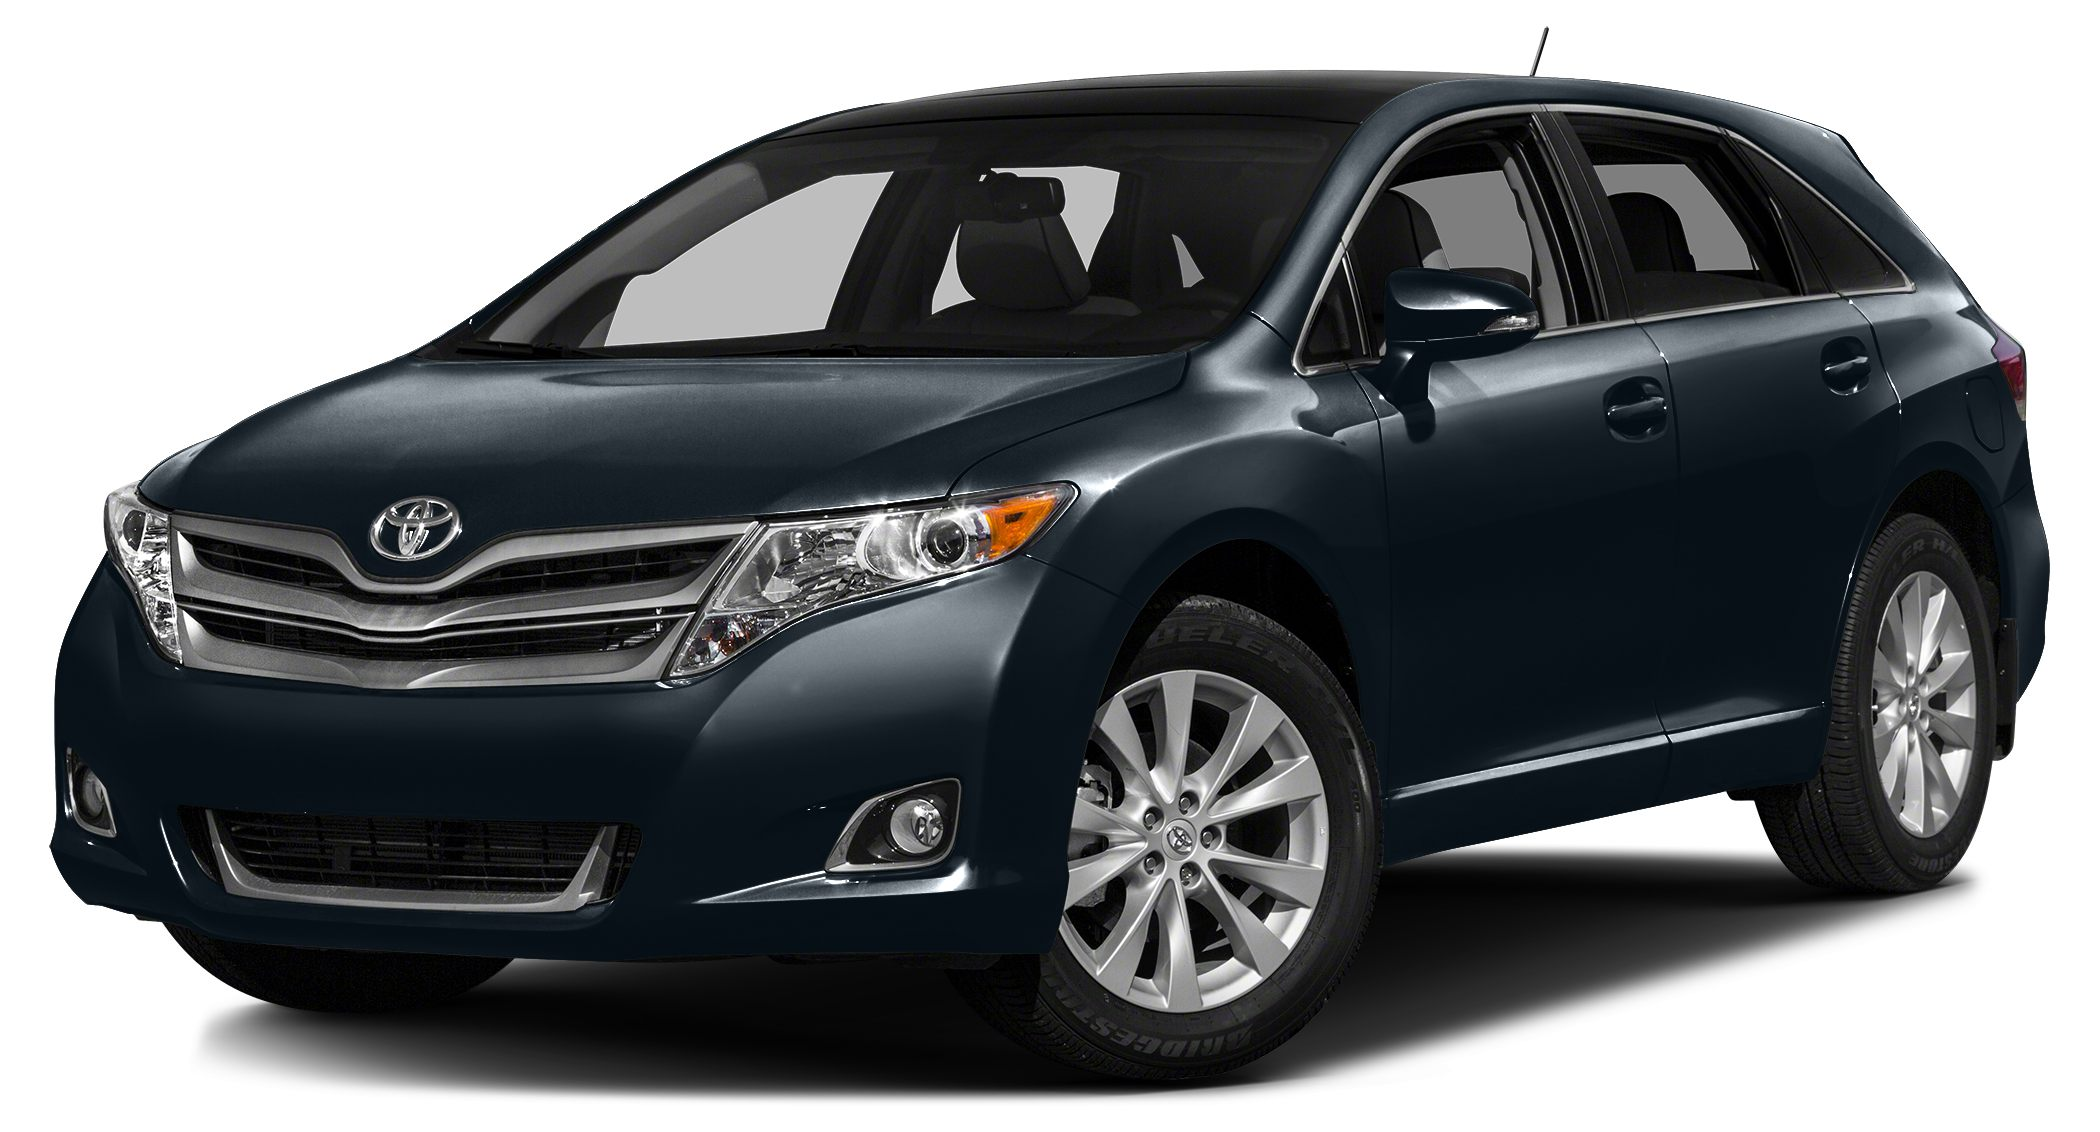 2013 Toyota Venza XLE Come see this 2013 Toyota Venza XLE It has a Automatic transmission and a G